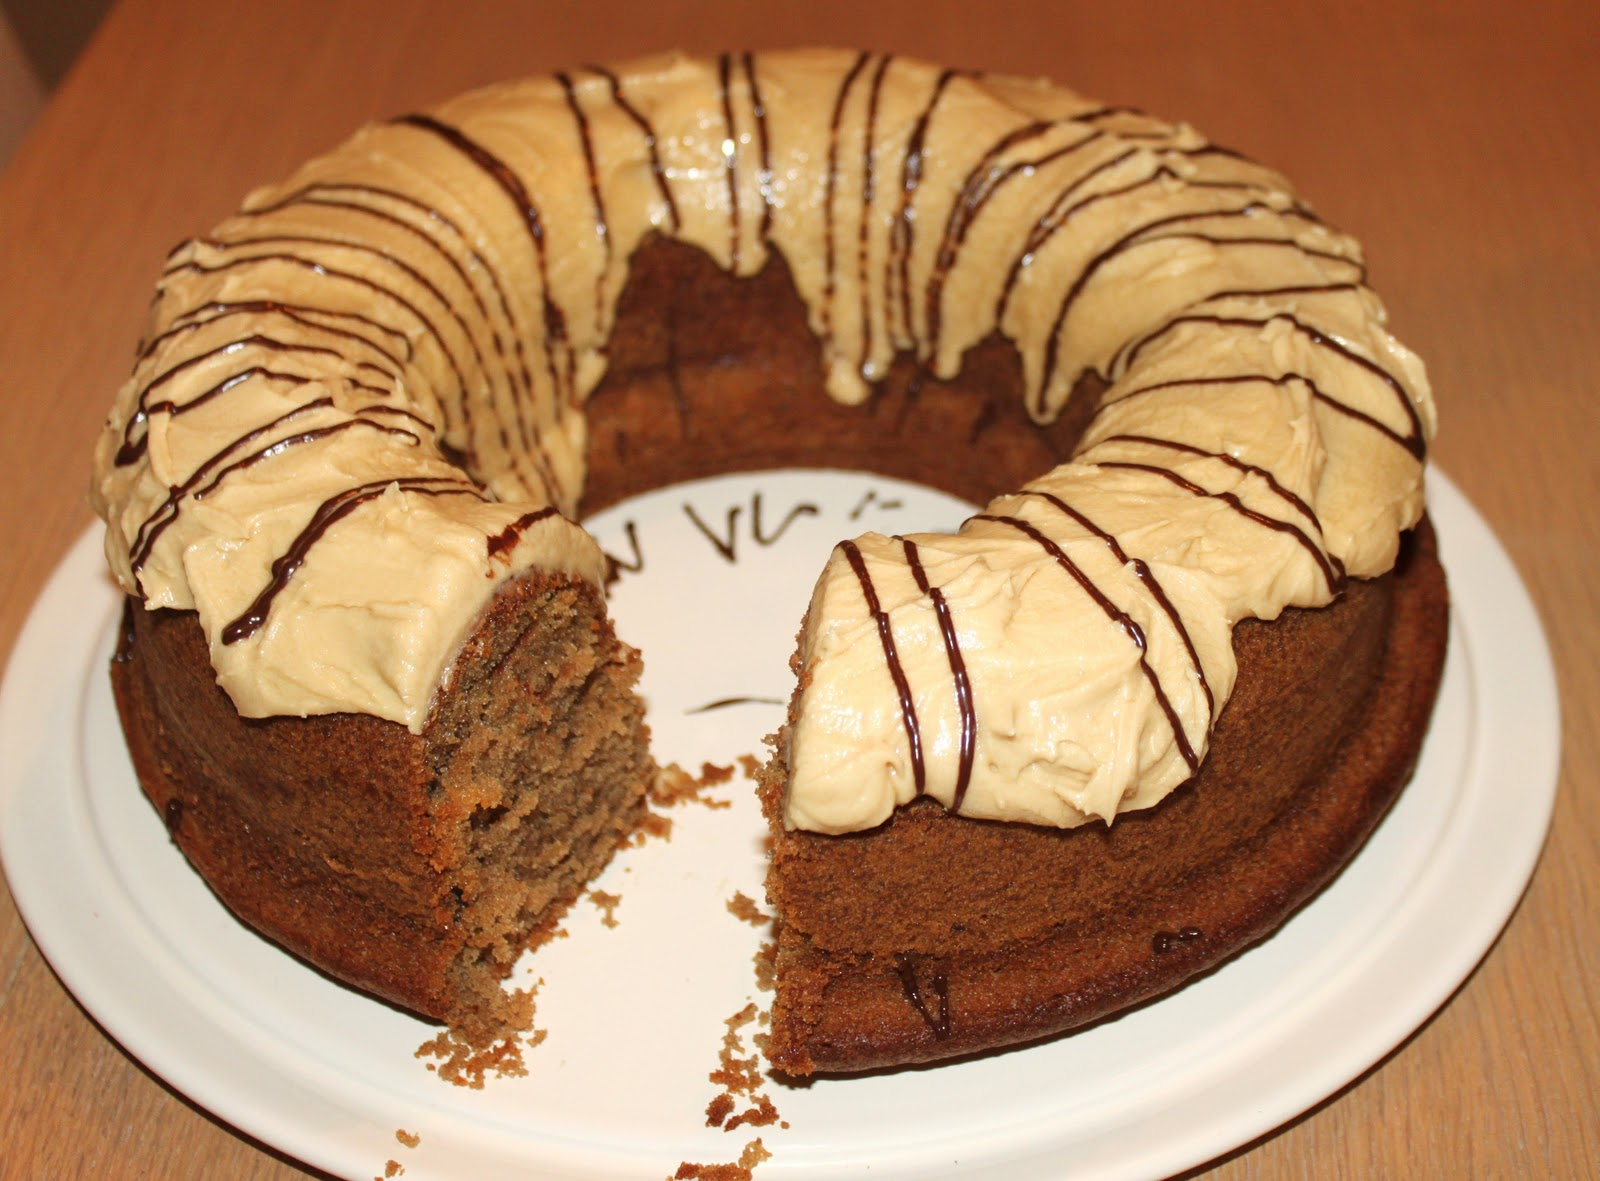 How Does Nothing Bundt Cakes Make Their Cakes